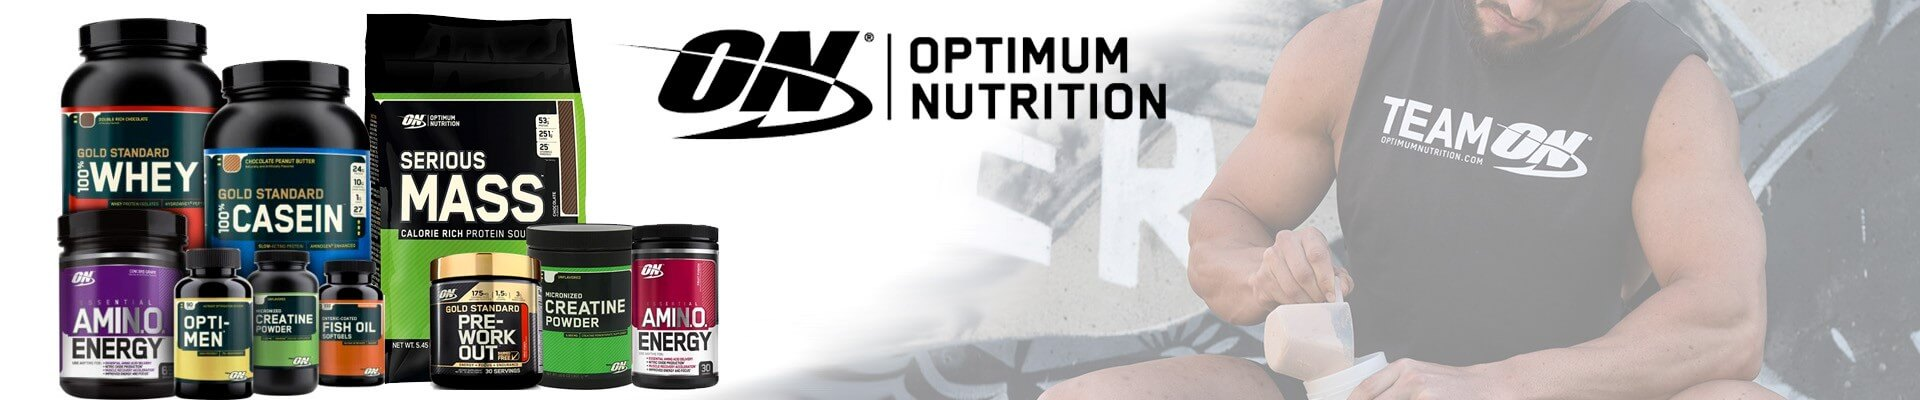 Optimum Nutrition Whey Protein & Amino Energy Supplements